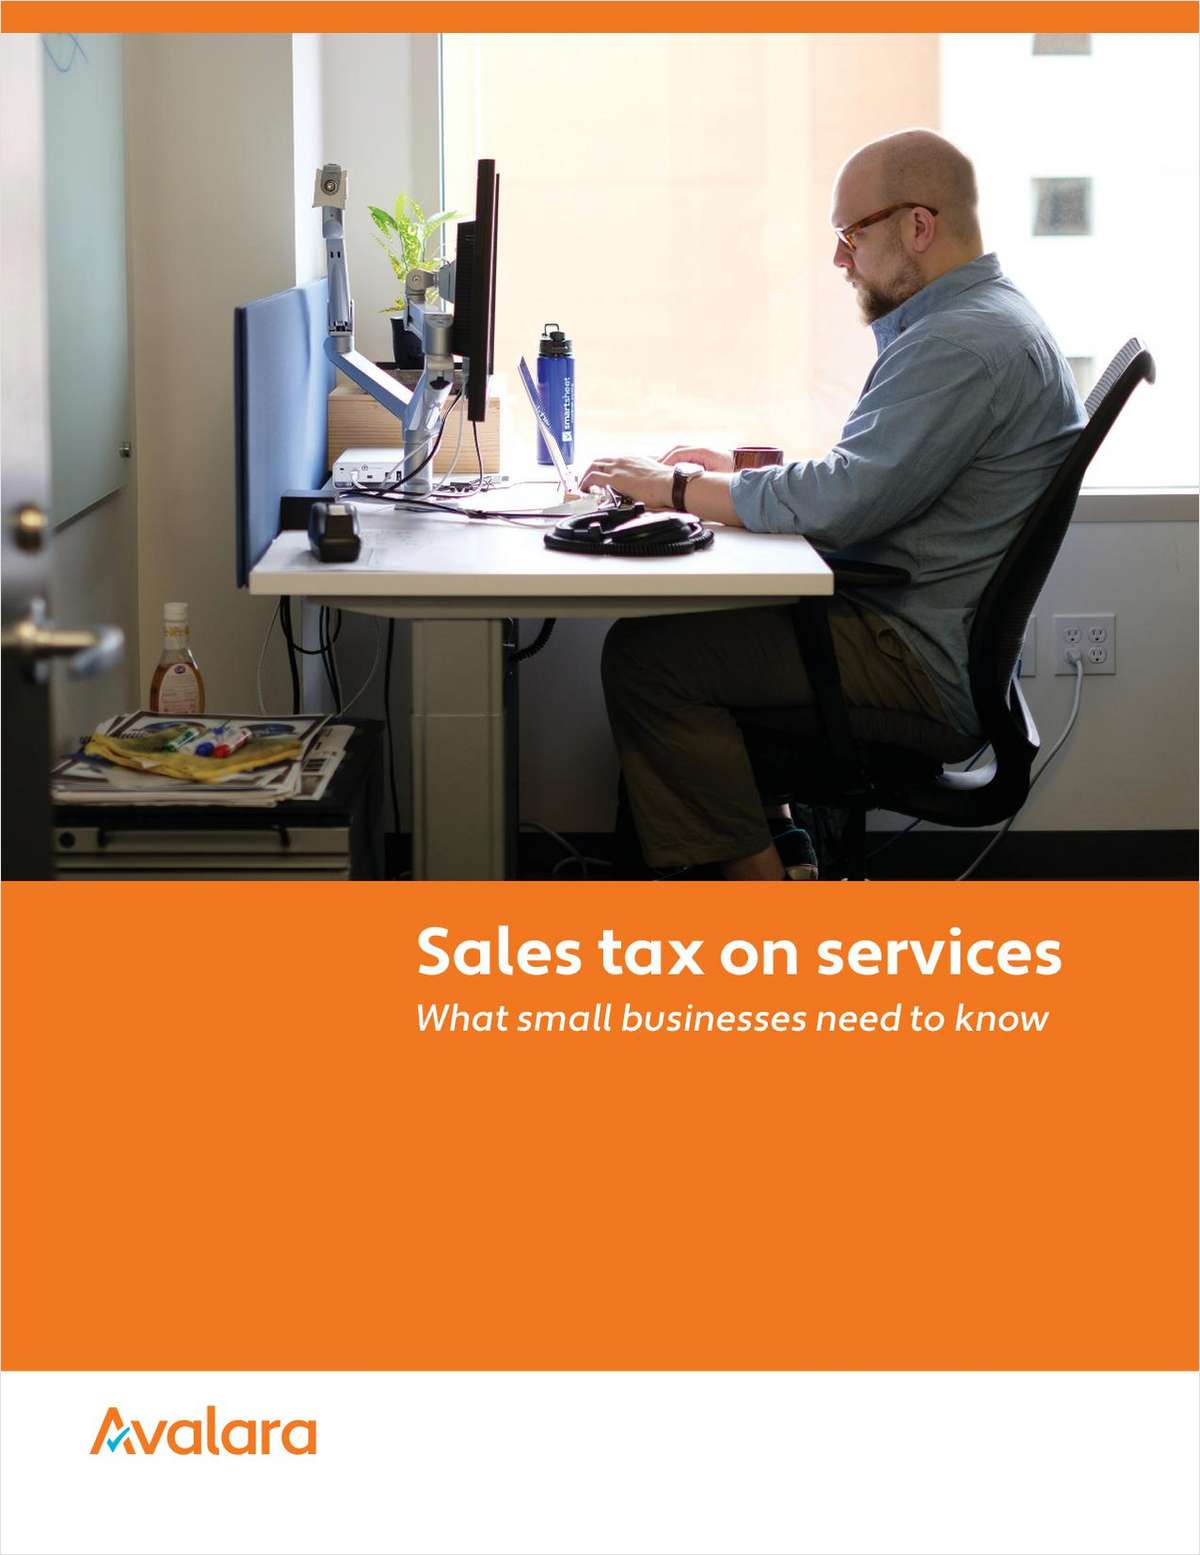 Sales Tax on Service: What Small Businesses Need to Know